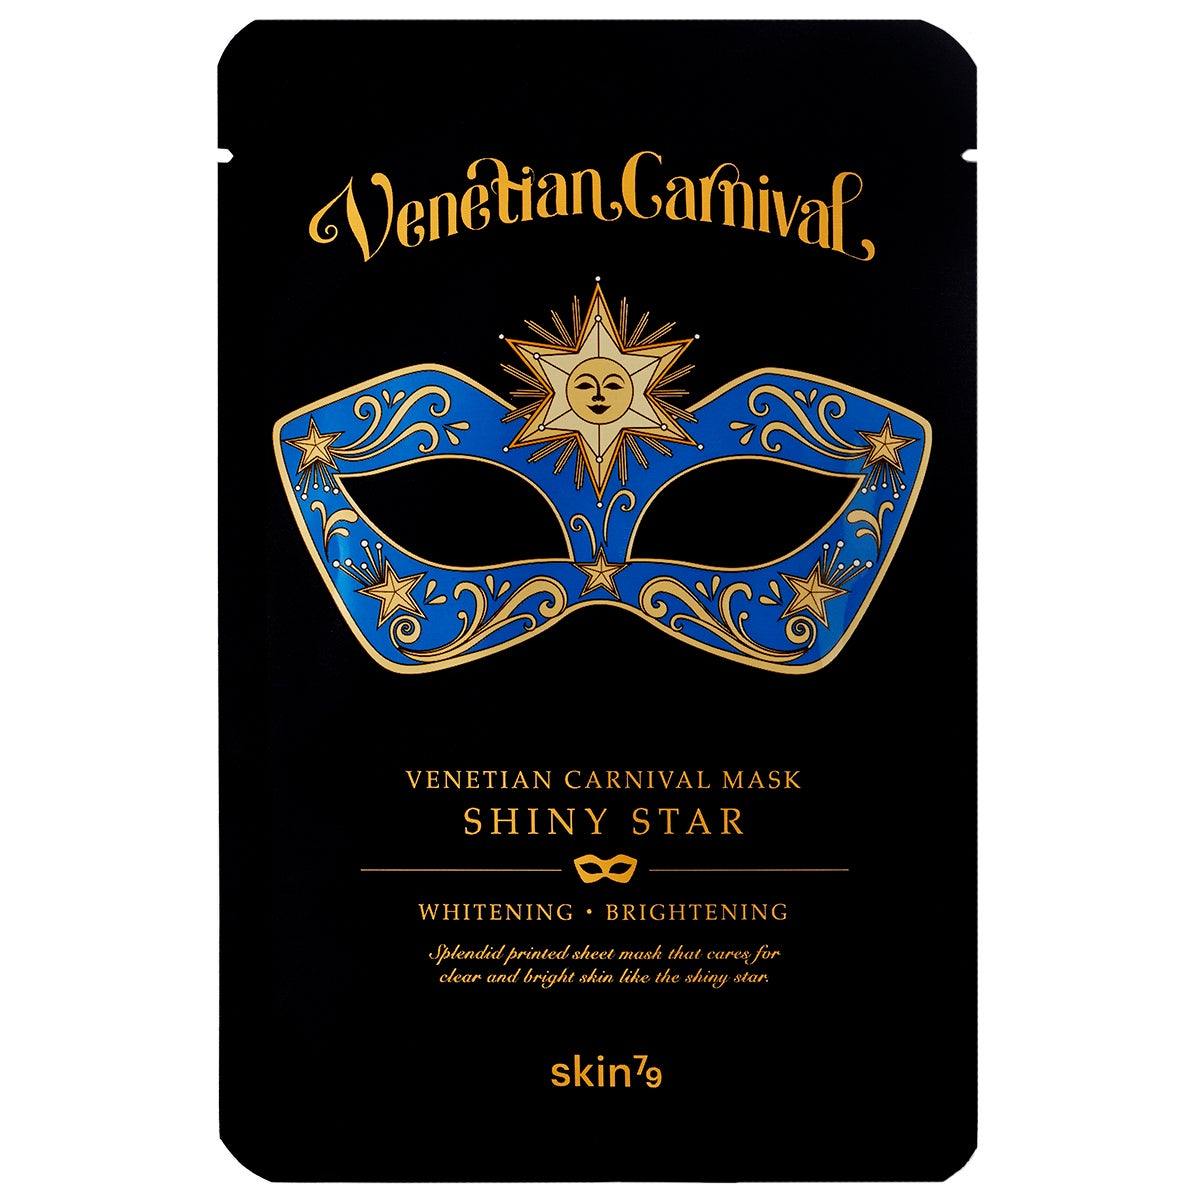 Venetian Carnival Mask Shiny Star 23 g Skin79 Sheet Masks